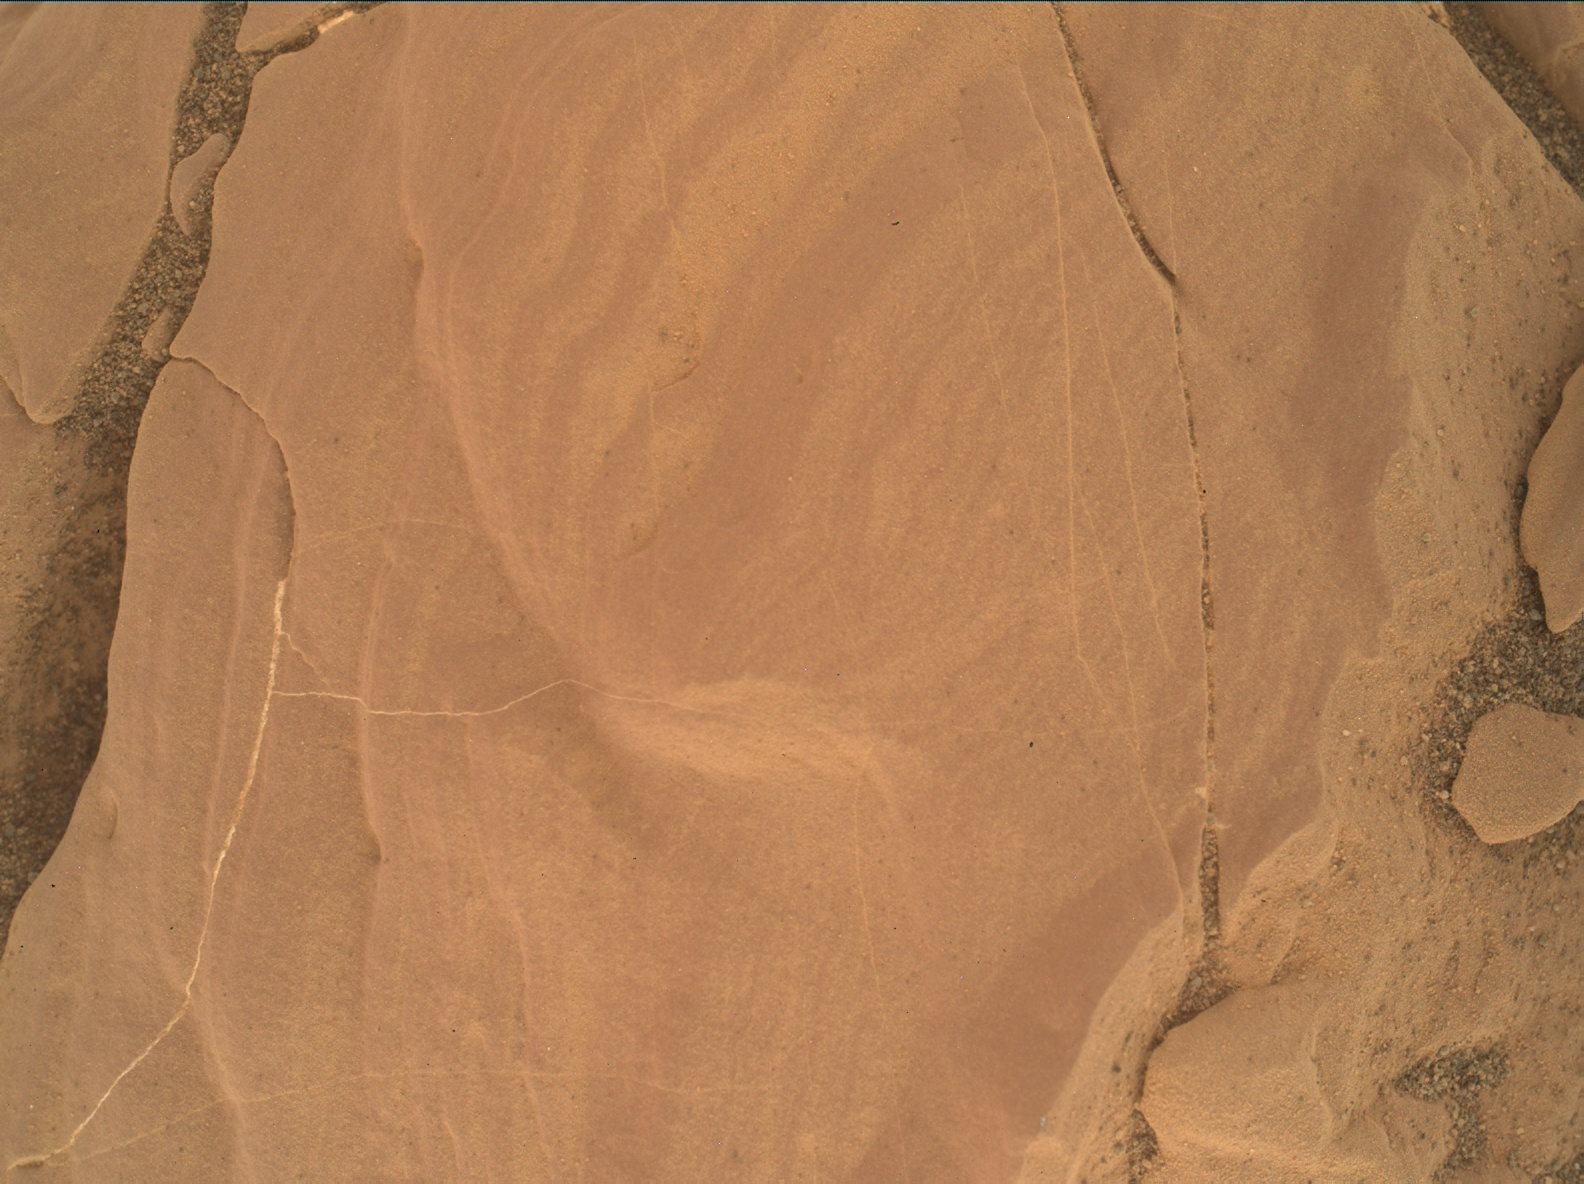 Nasa's Mars rover Curiosity acquired this image using its Mars Hand Lens Imager (MAHLI) on Sol 1811